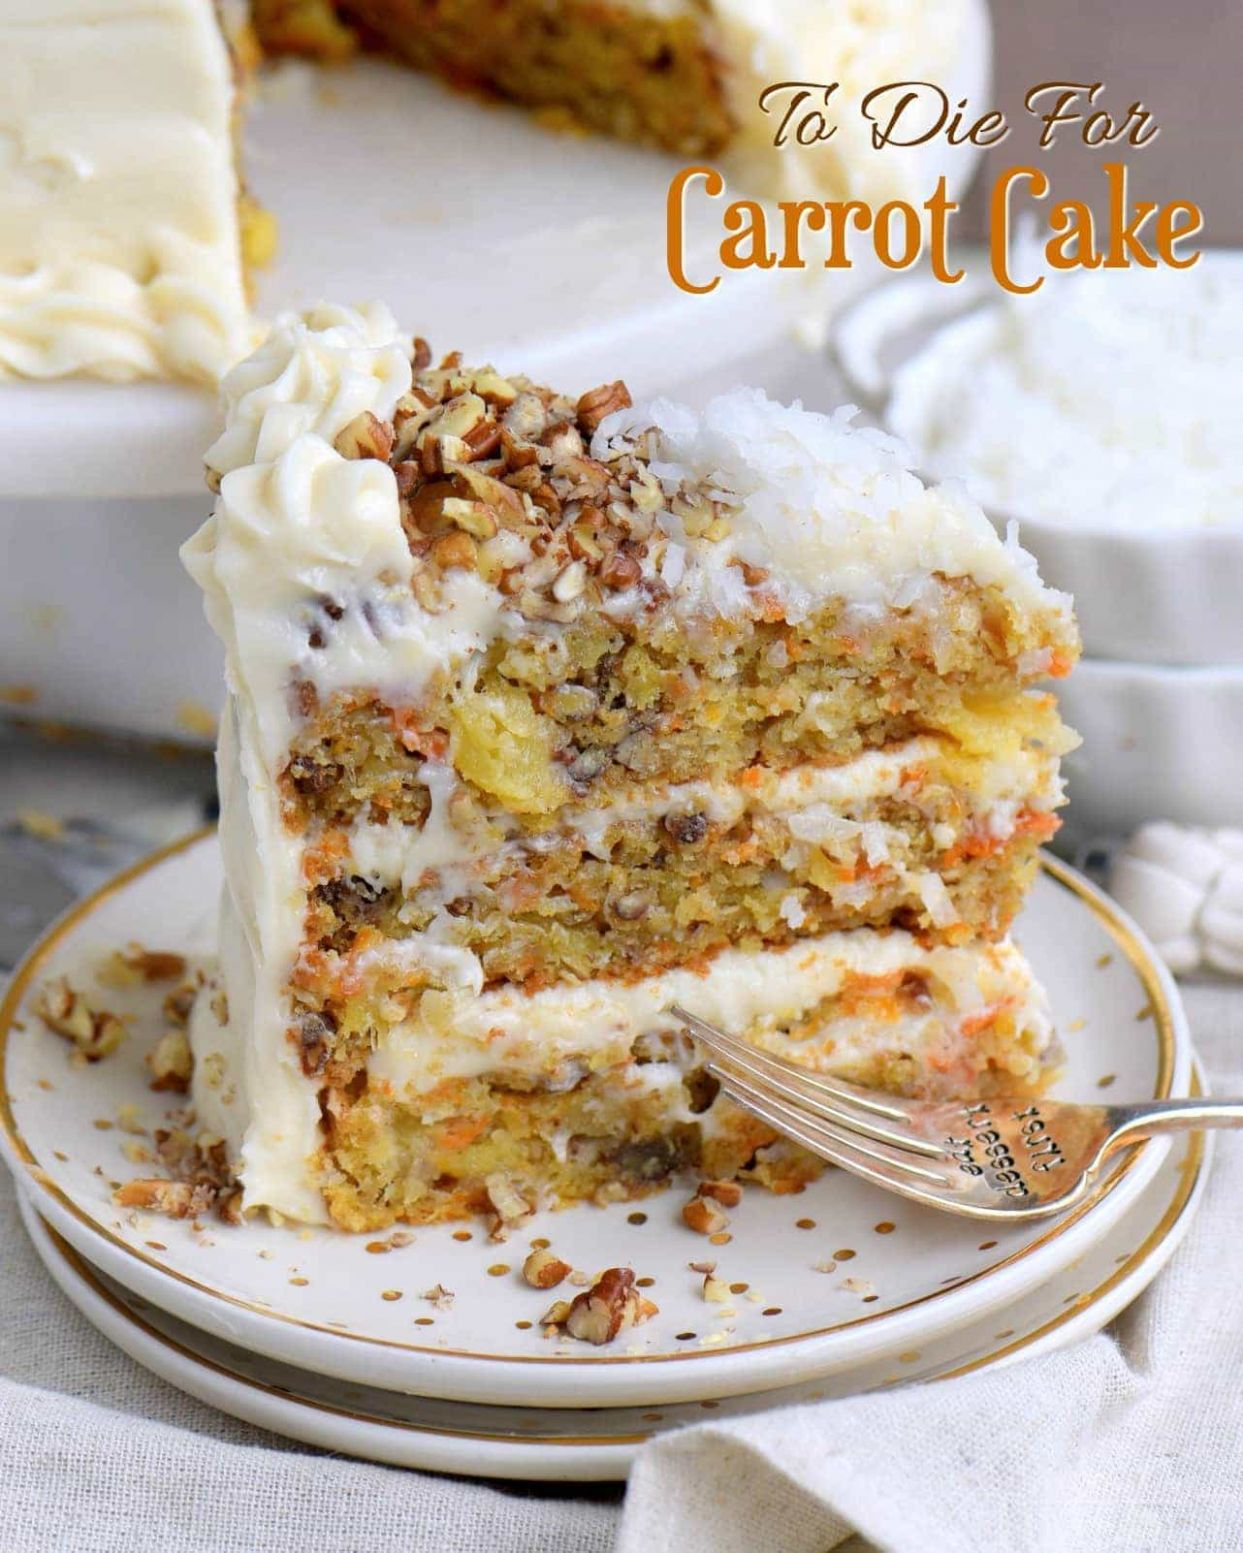 To Die For Carrot Cake - Cake Recipes Using Oil Not Butter